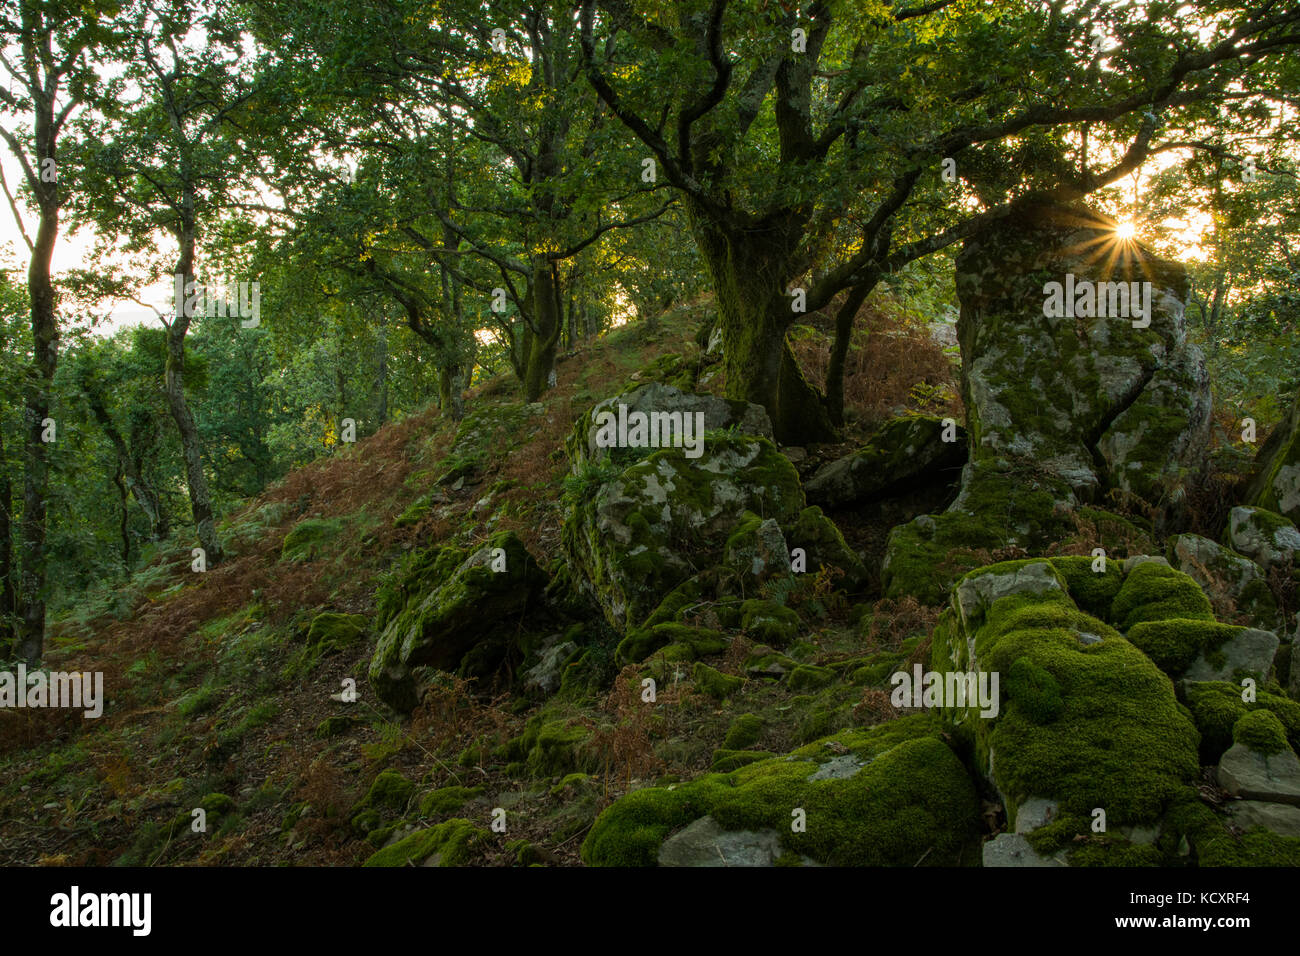 Sun makes a star between trees in deep forest in Guipuzkoa Vasque Country (Euskadi, Spain). - Stock Image